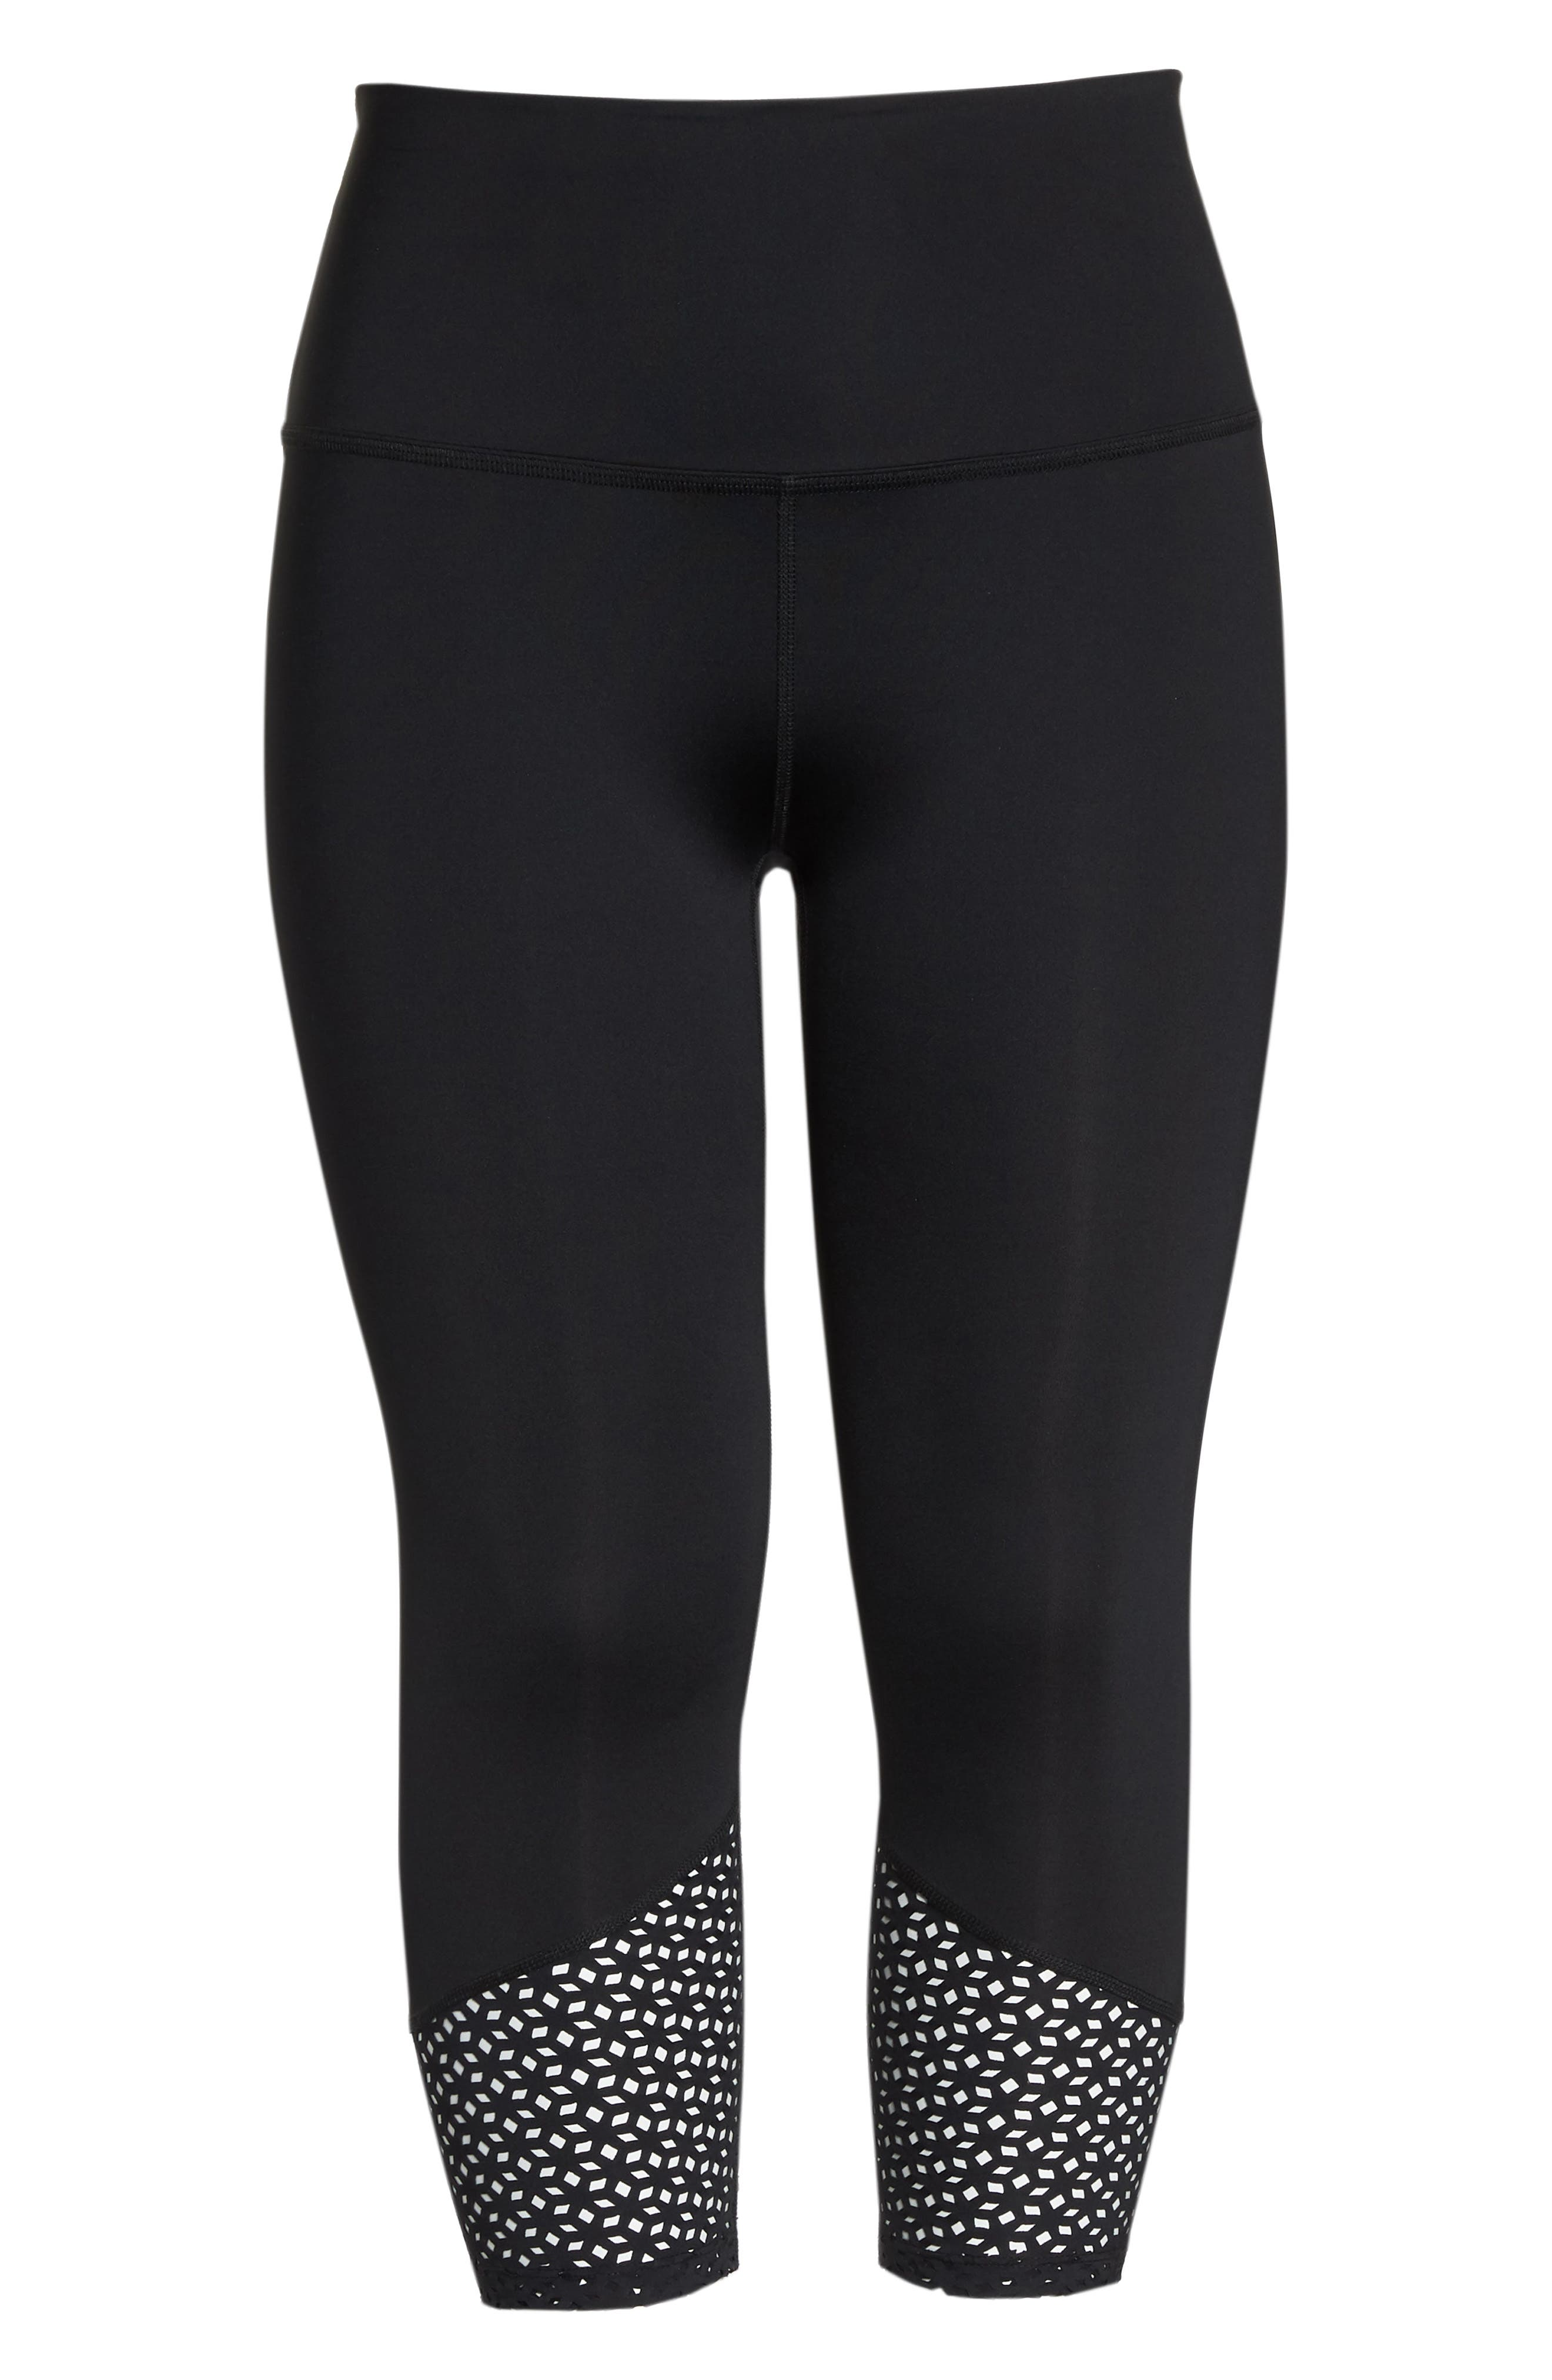 Perfect Angles High Waist Leggings,                             Alternate thumbnail 6, color,                             001